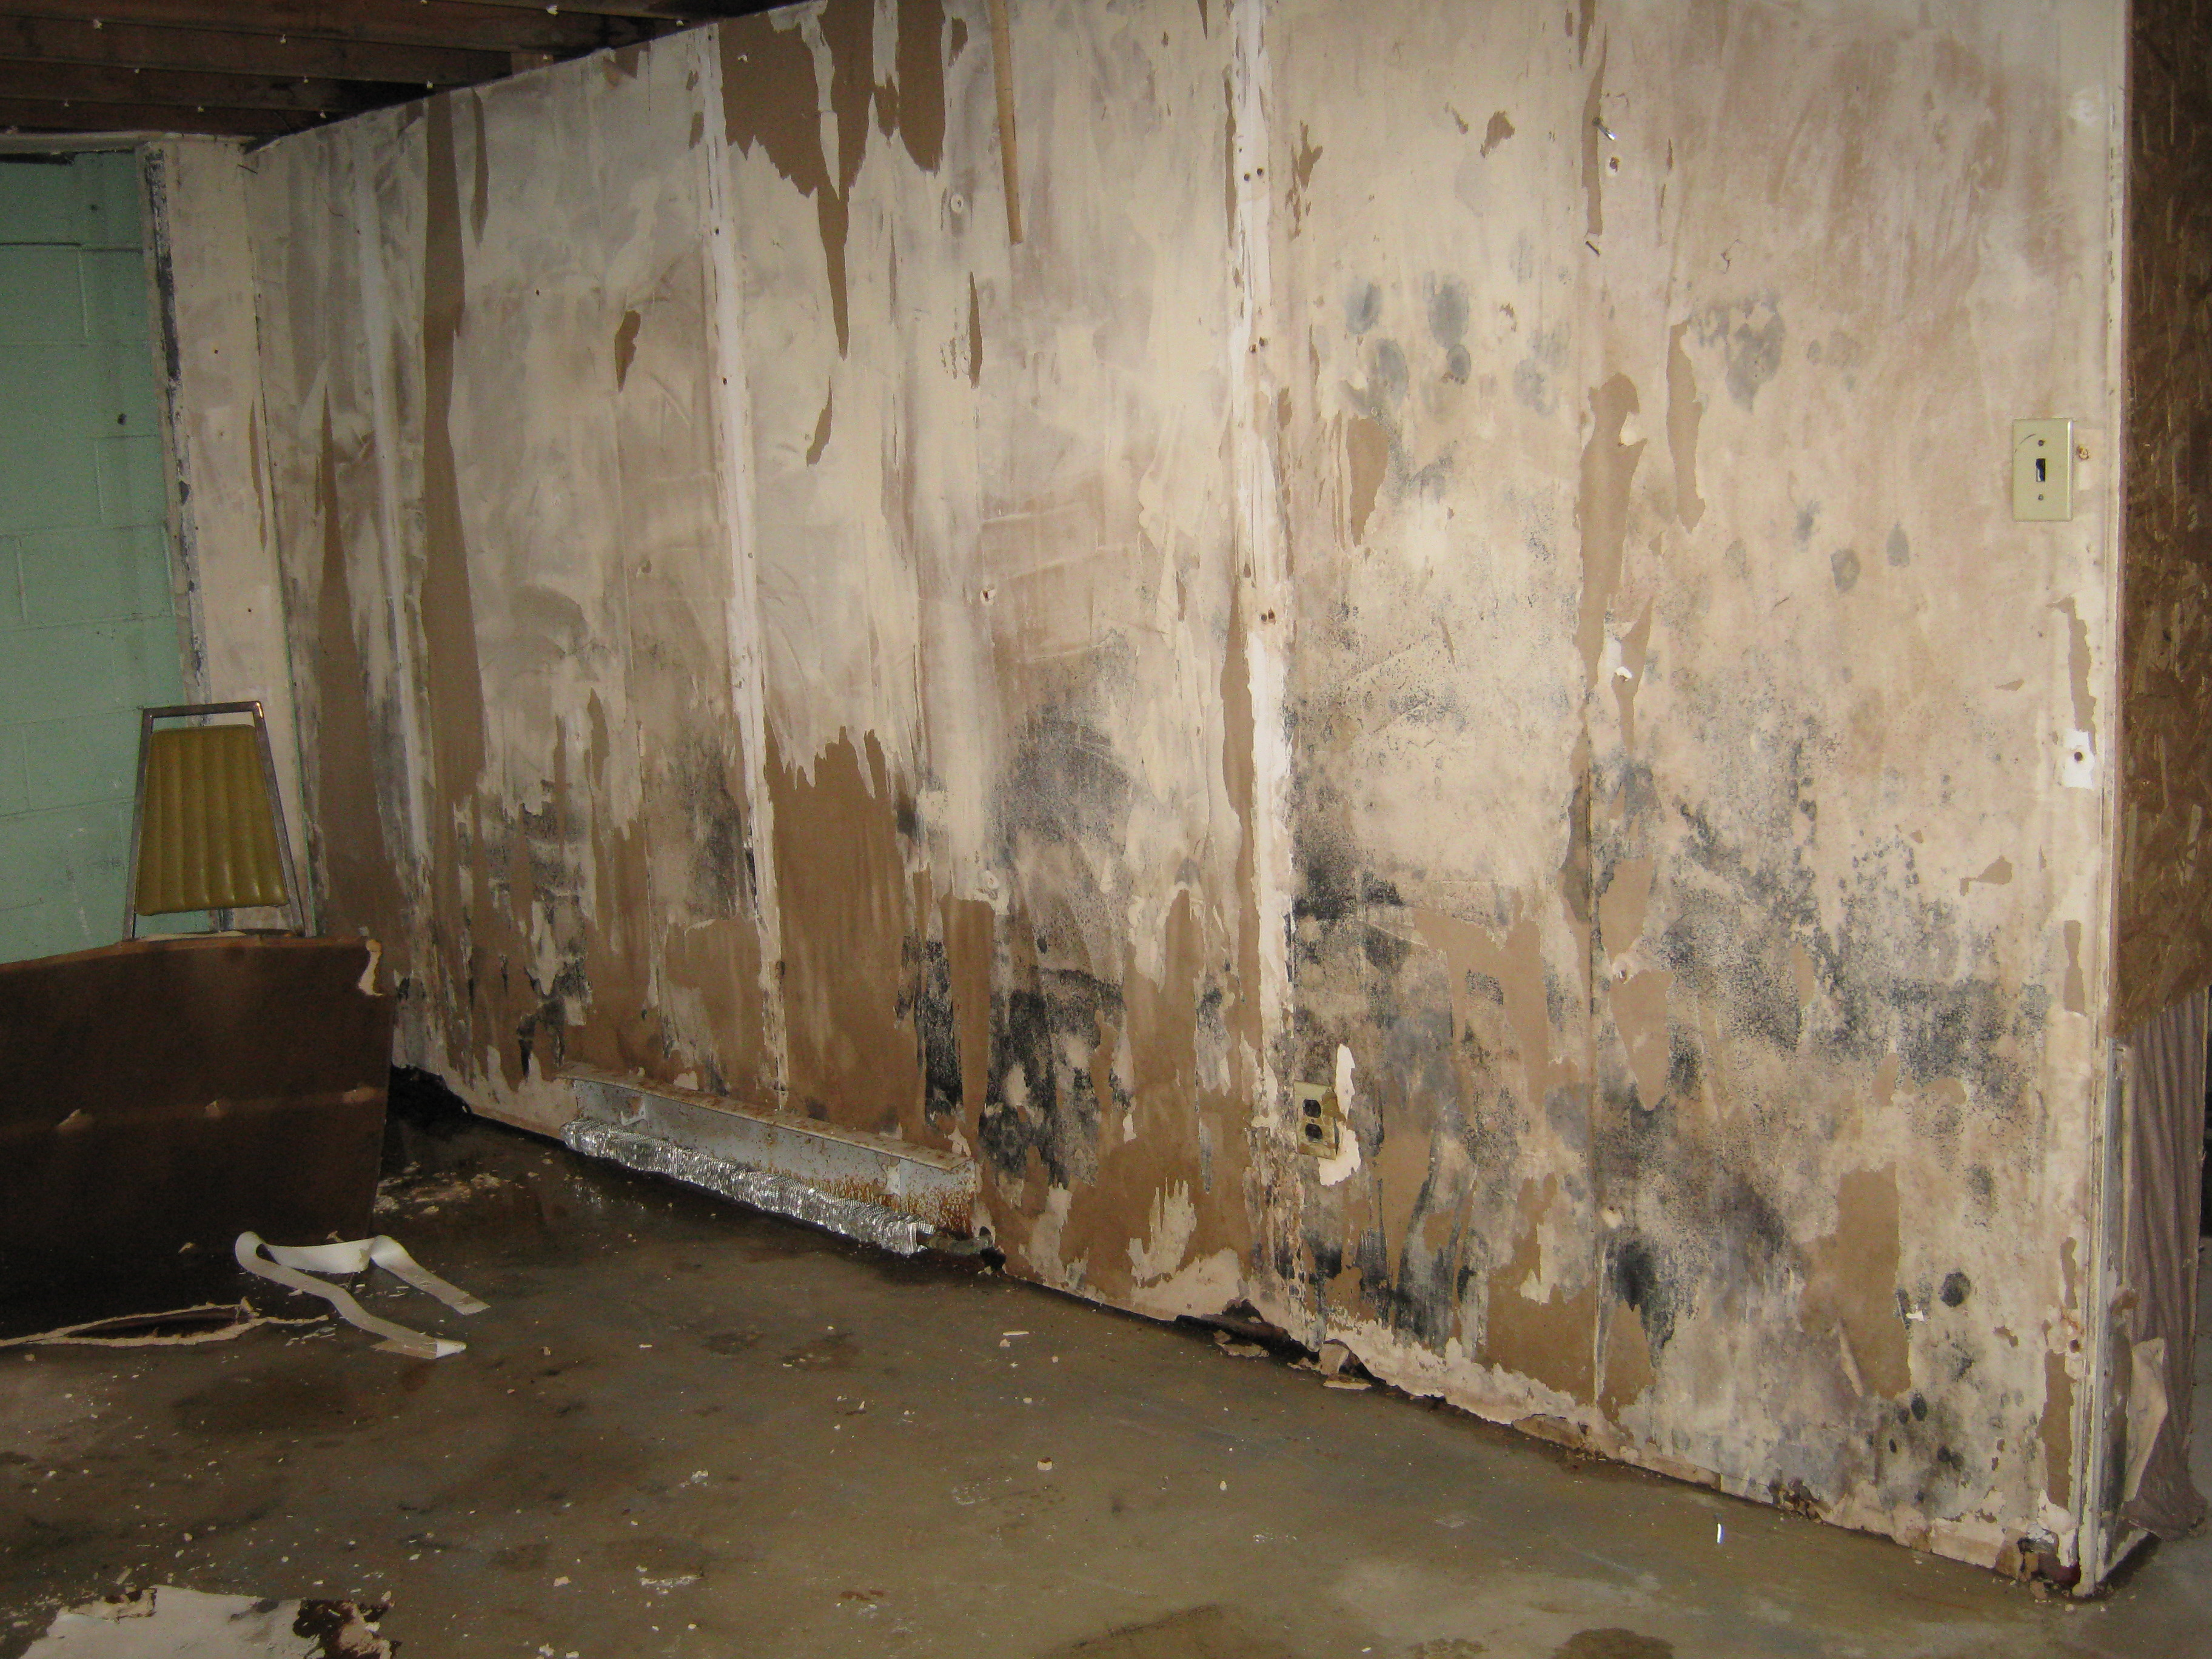 water damaged buildings and mold toxins